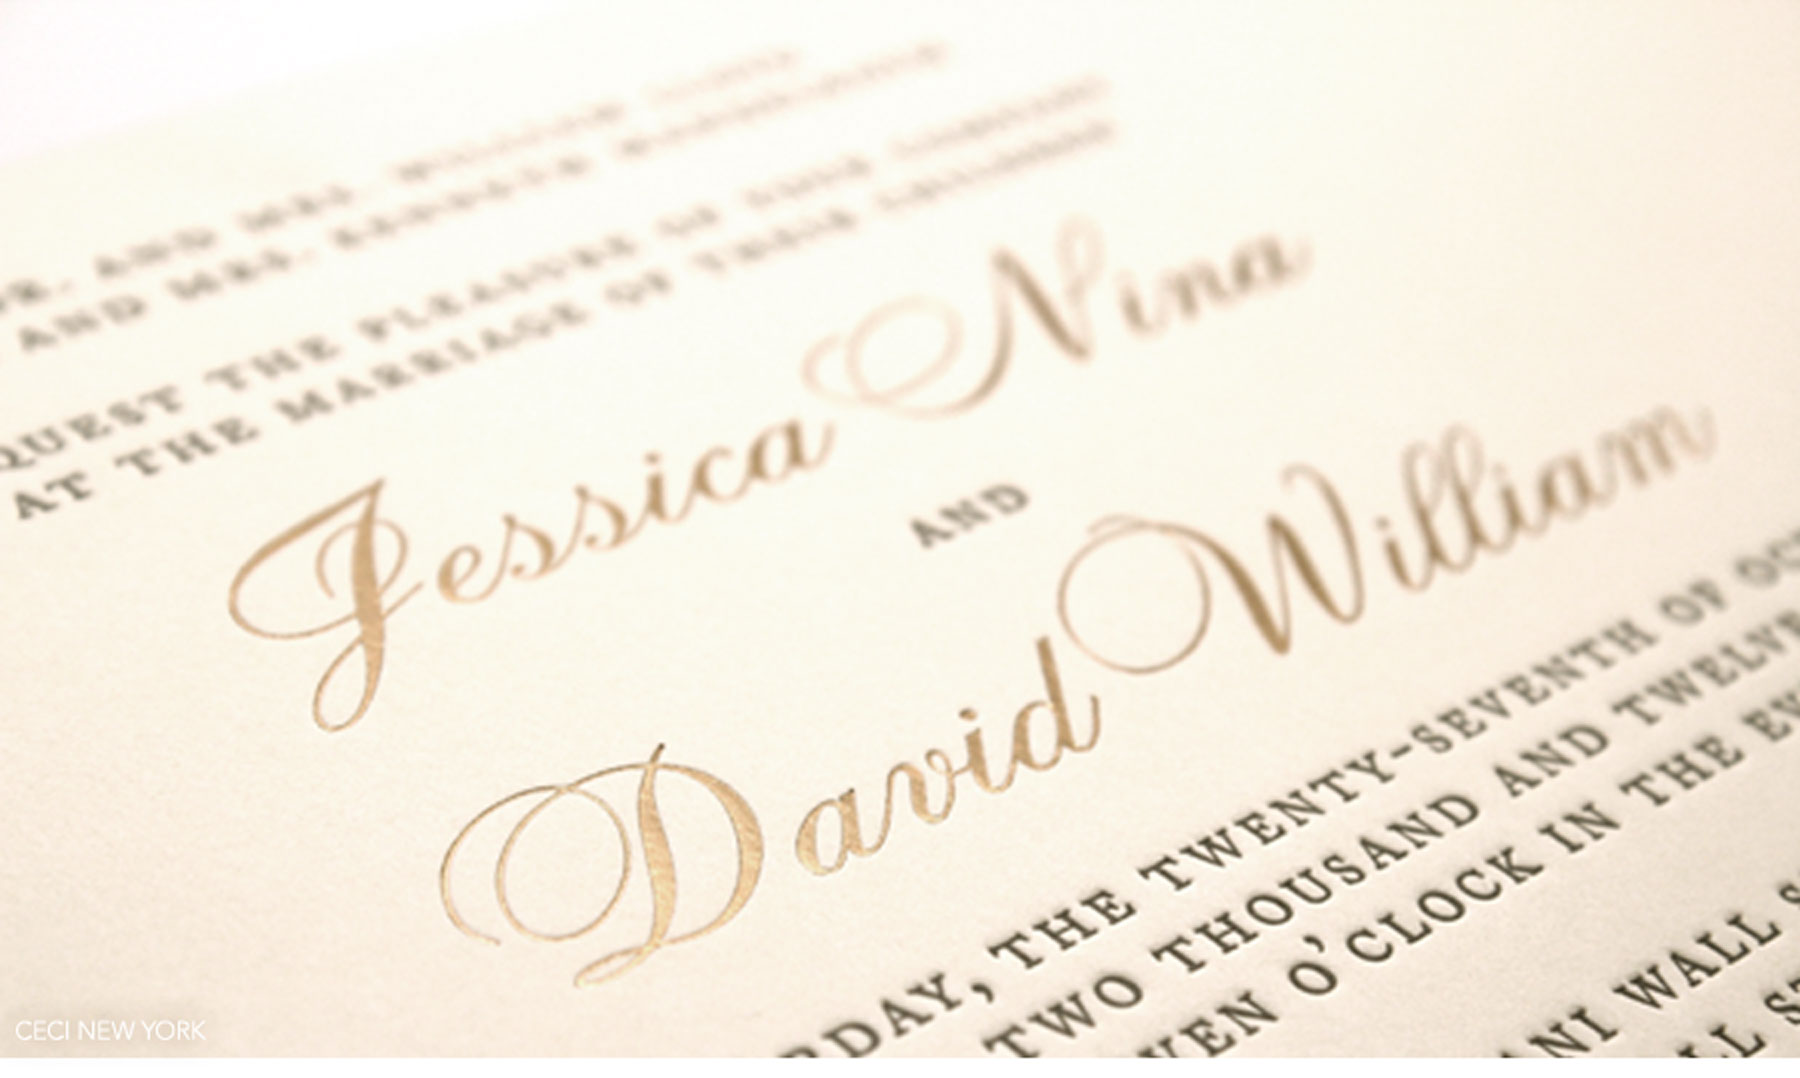 Luxury Wedding Invitations by Ceci New York - Our Muse - Classic, Elegant New York Wedding at Cipriani - Be inspired by Jessica and David's classic, elegant New York wedding at Cipriani - Ceci New York Luxury Wedding Invitations - wedding, invitation, letterpress printing, ceci new york, rounded edges, gold, ivory